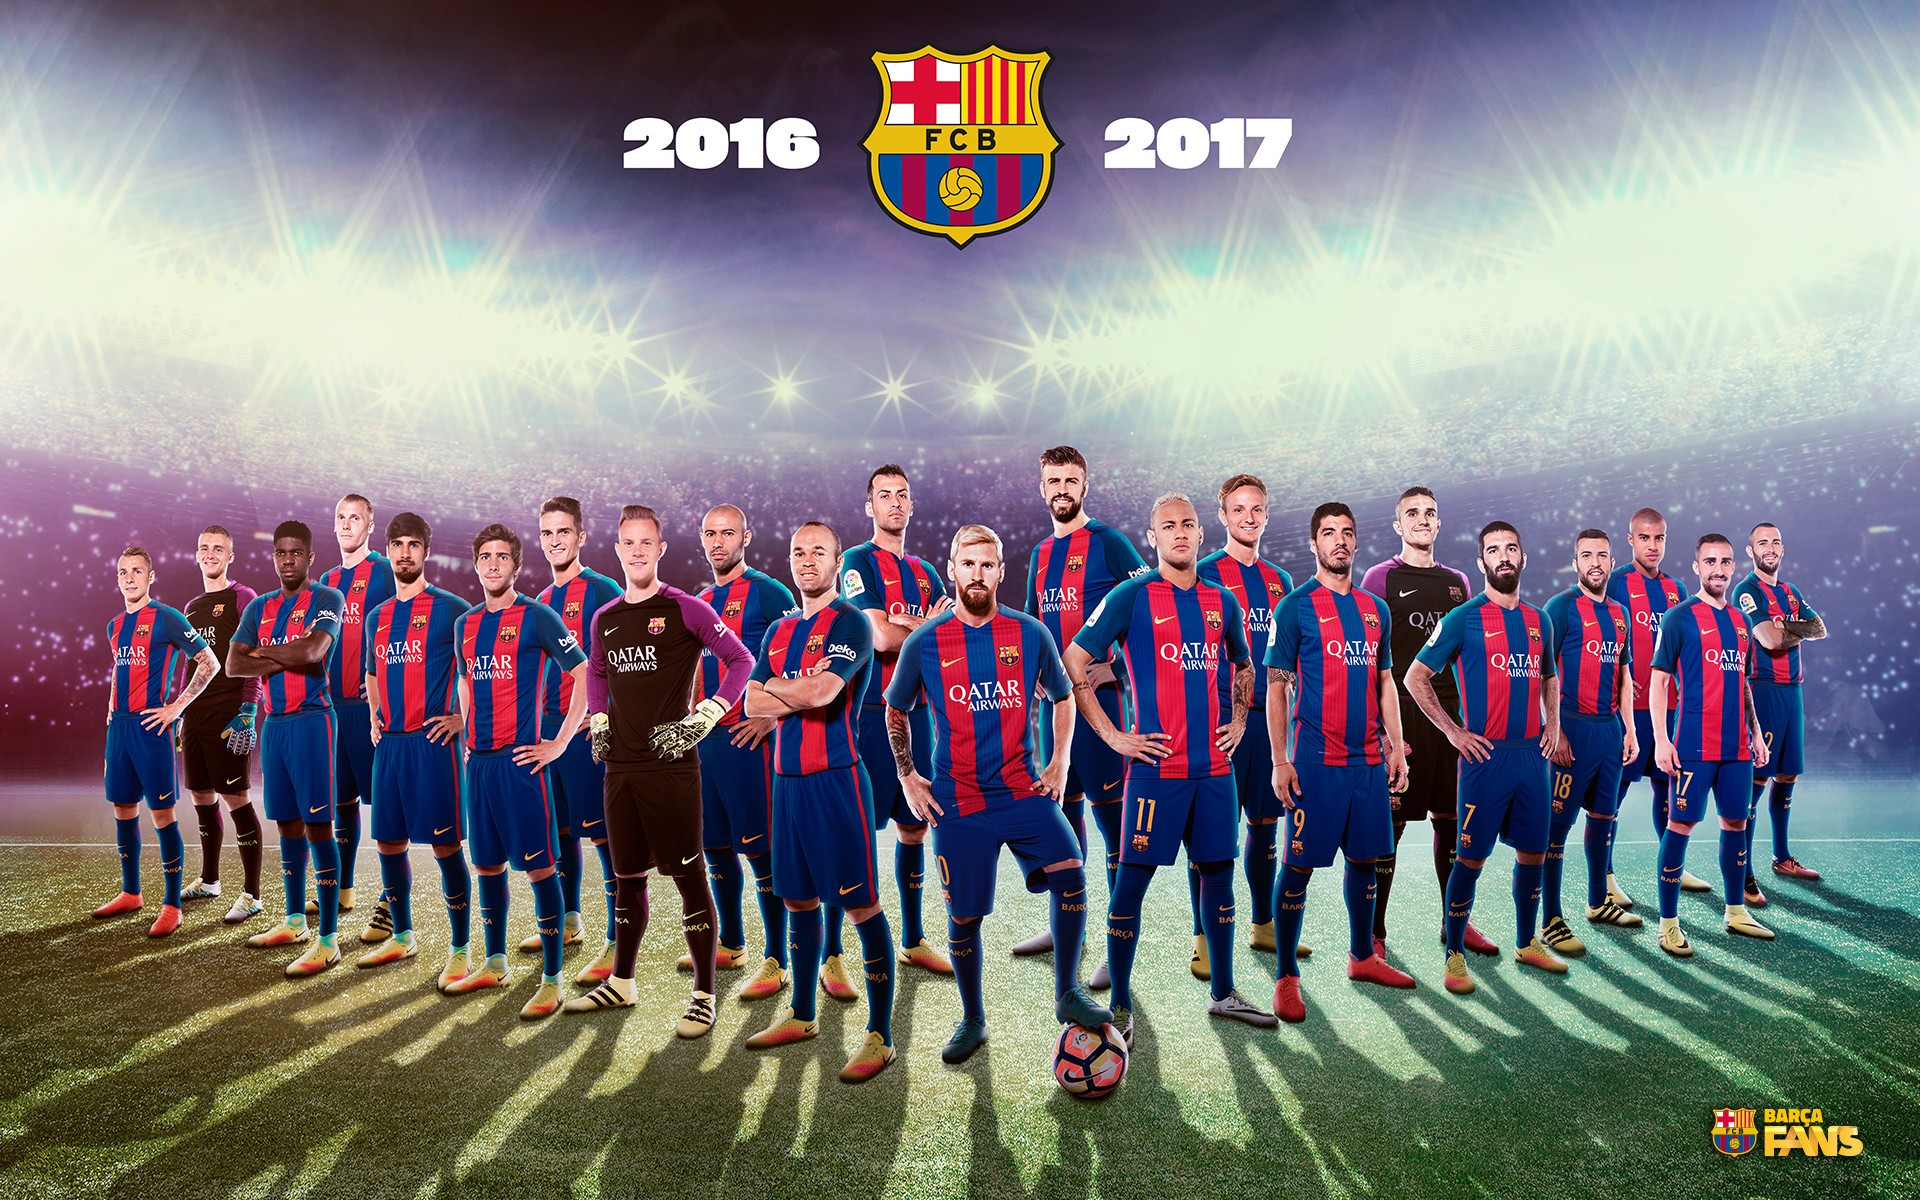 Fc Barcelona Computer Wallpapers Barcelona Fc Wallpaper Team 1920x1200 Download Hd Wallpaper Wallpapertip